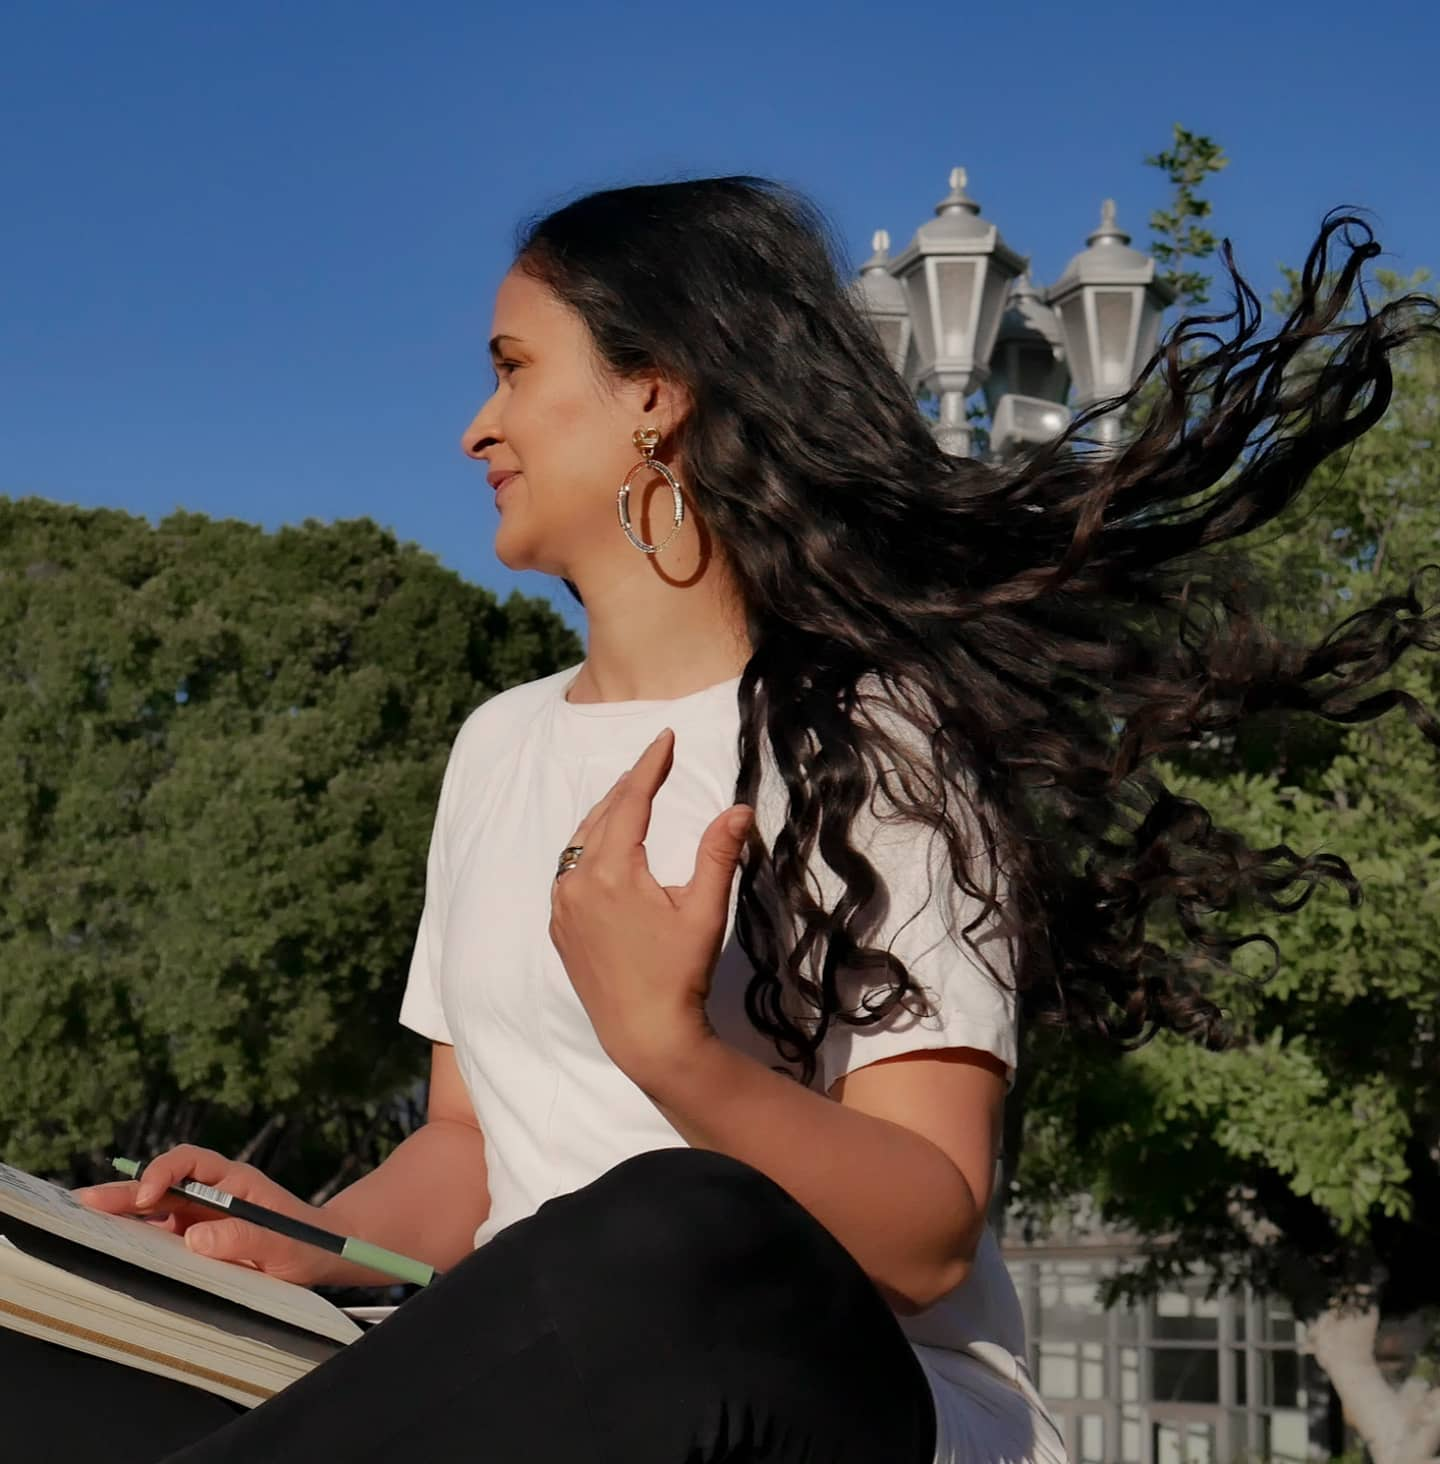 photo of Ludy (ludmila) sitting against trees and street lamps flipping her hair